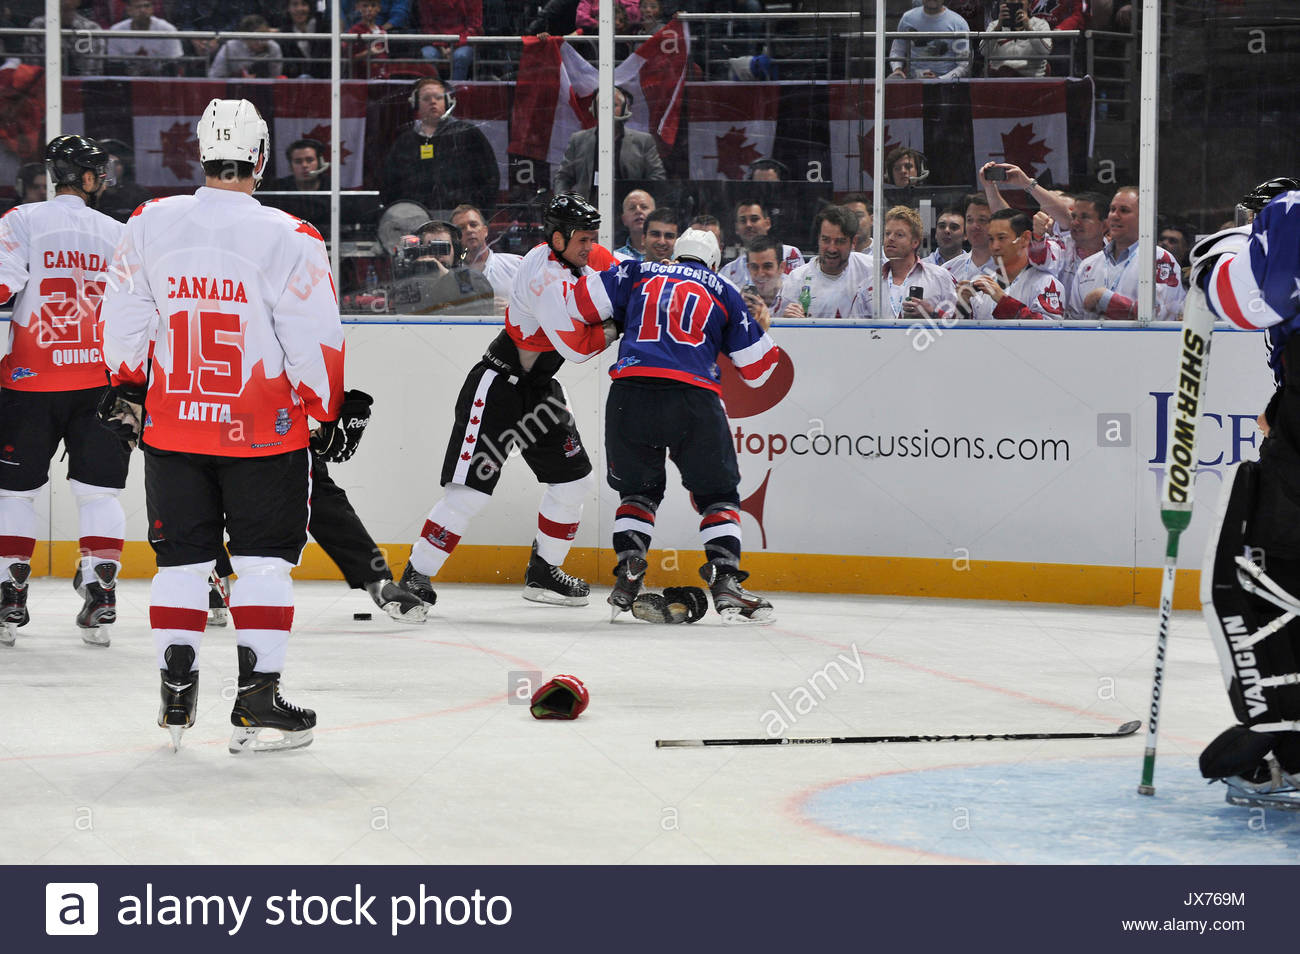 745b39871c5 Kevin Harvey of Team Canada wrestles with Mark McCutcheon of Team USA.  Leading ice hockey players compete in the IIHT International Ice Hockey  Tournament to ...